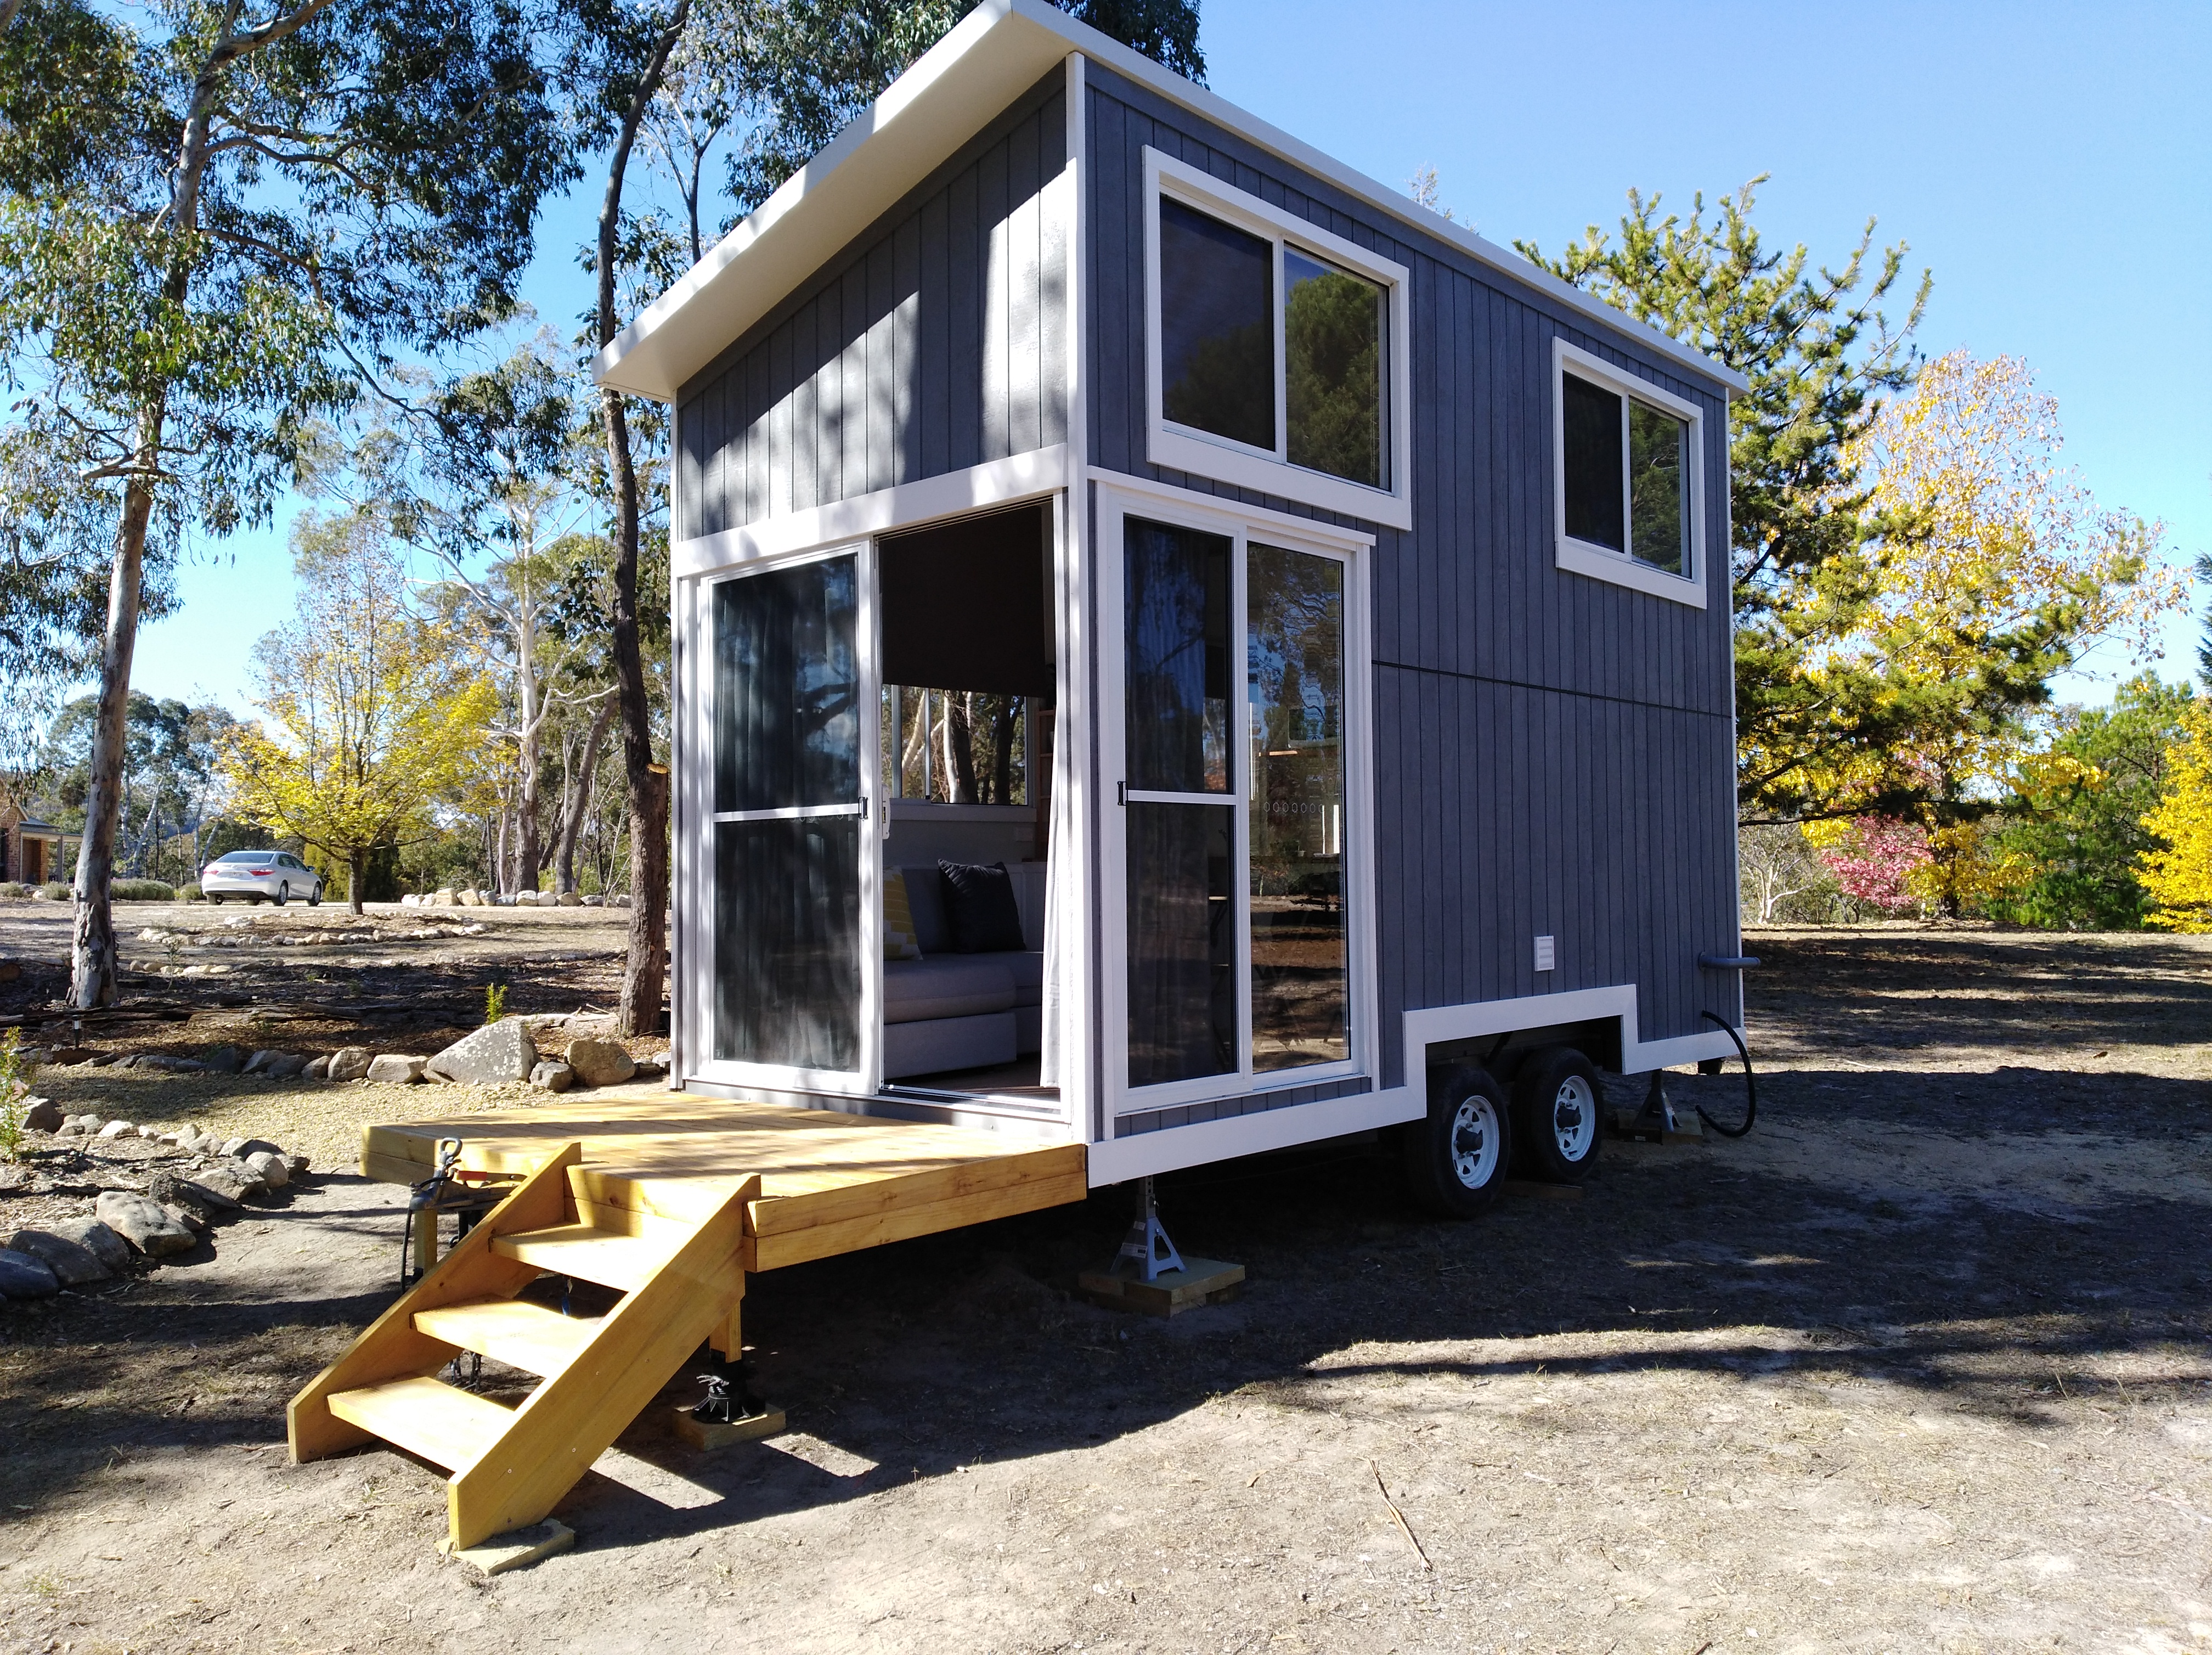 Whispers Tiny house for rental